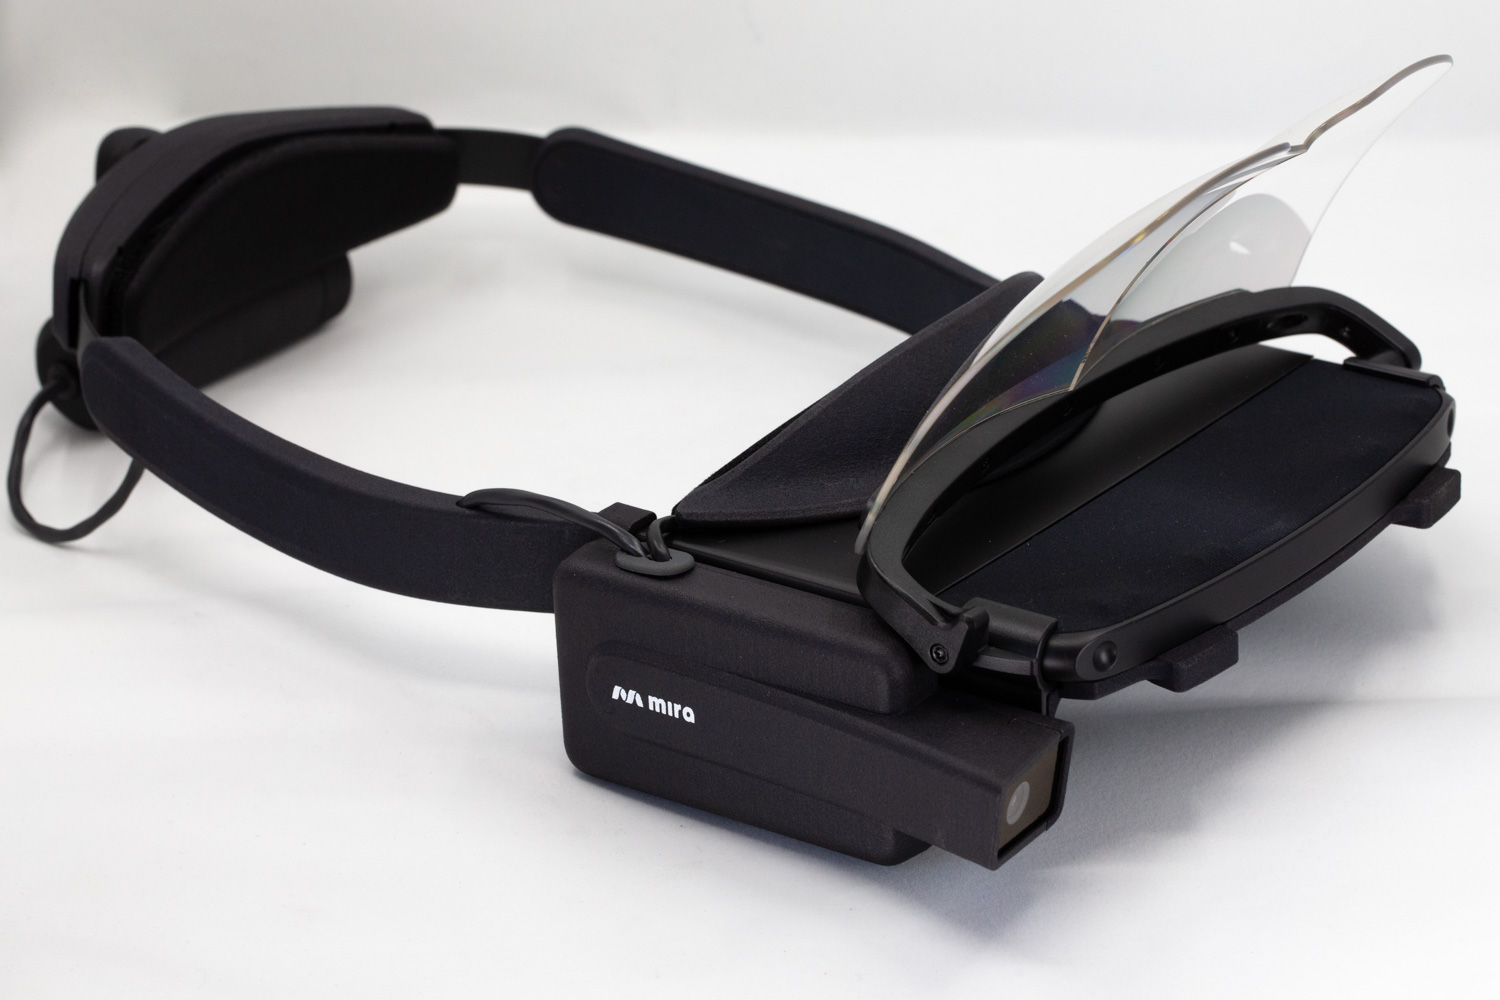 Mira Labs Prism headset, with parts printed using Multi Jet Fusion capabilities